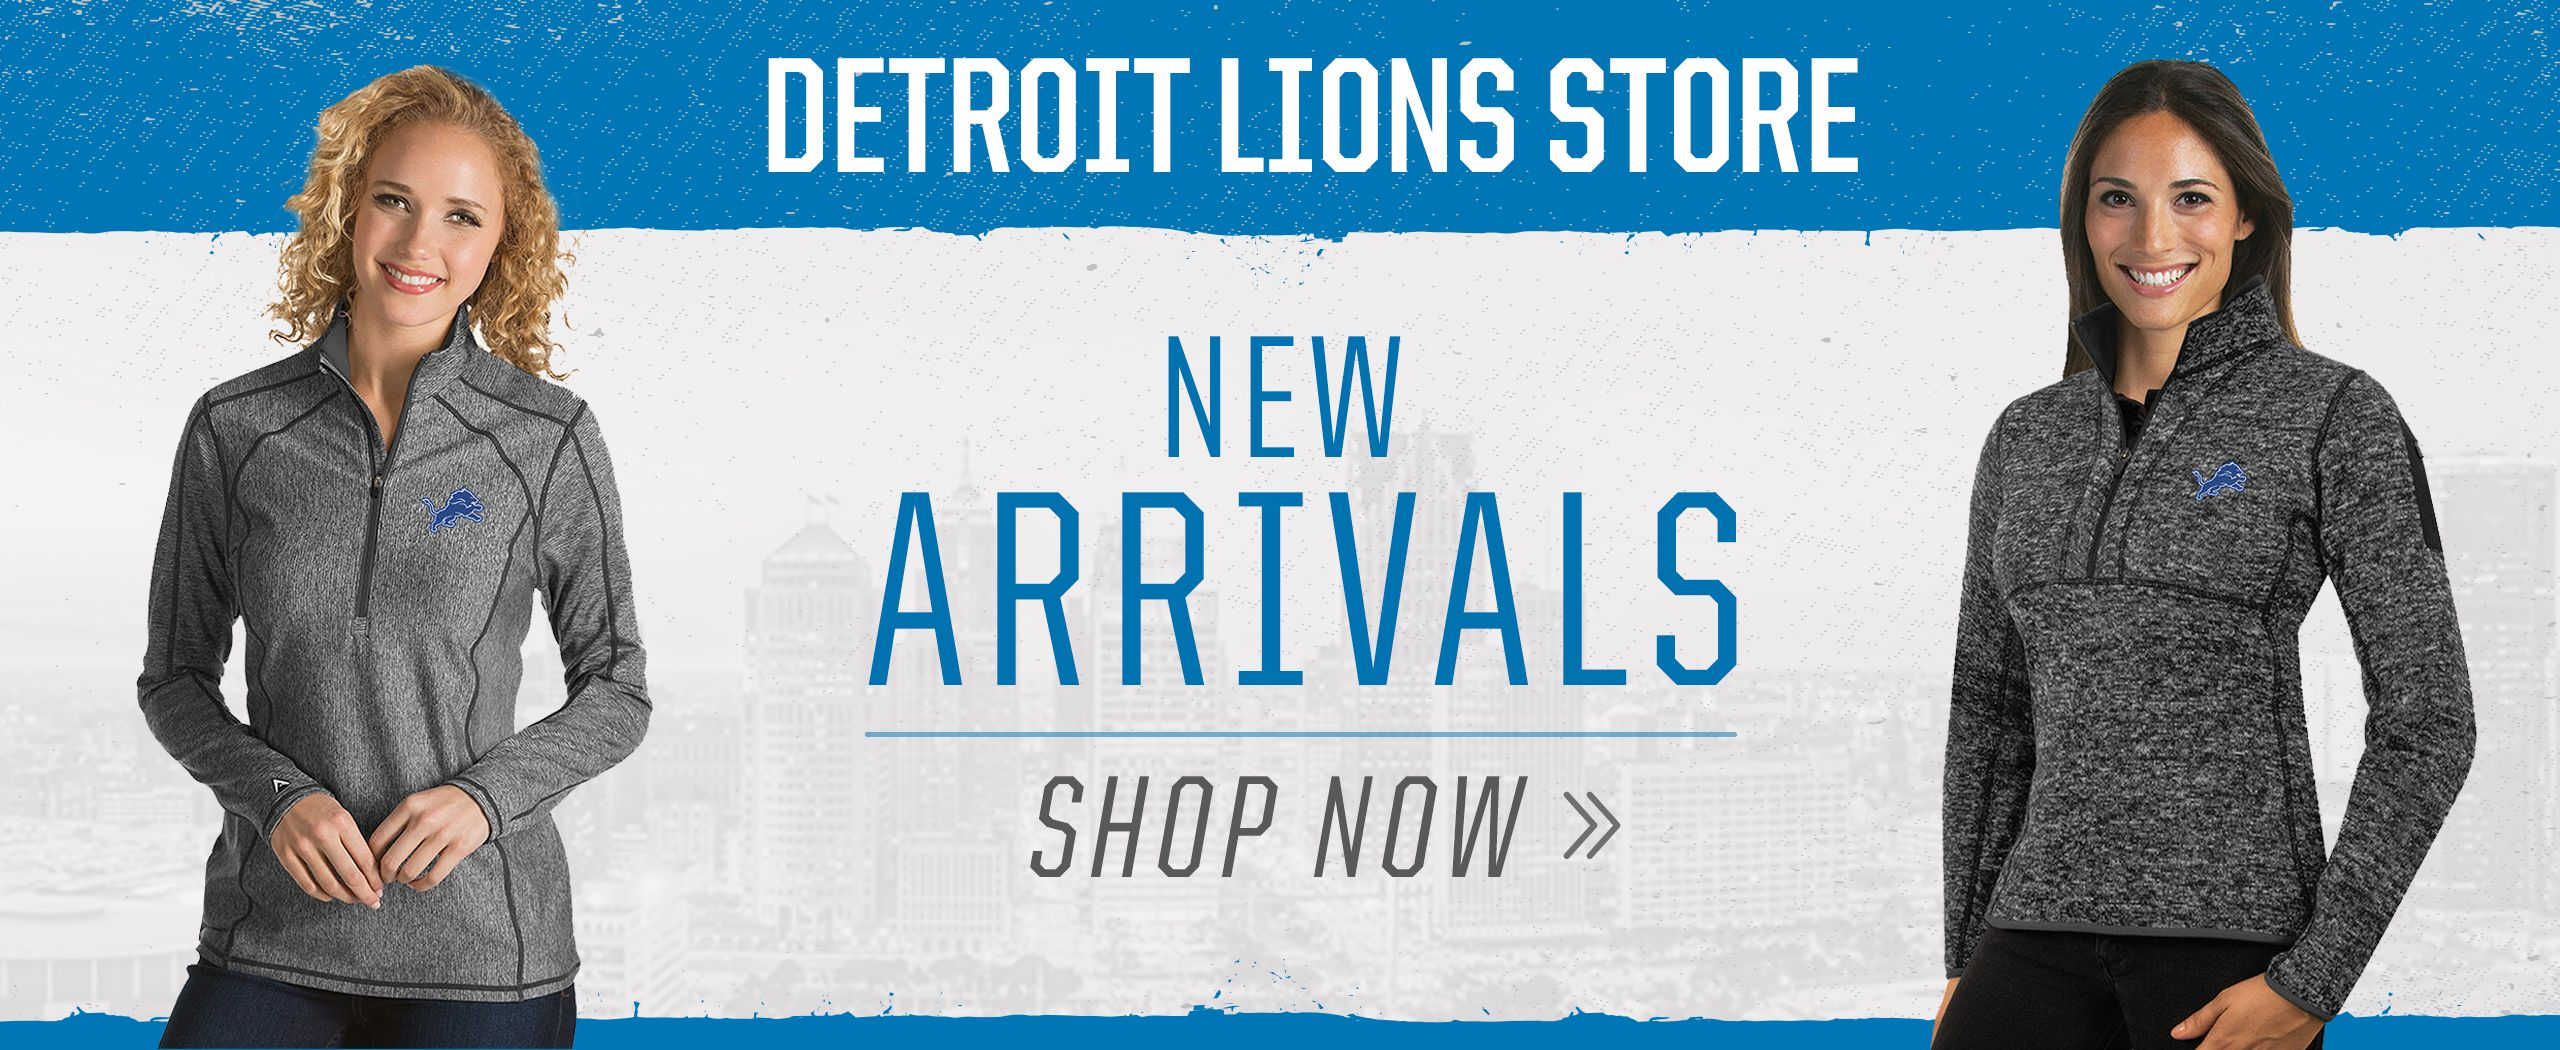 lions-store-banner